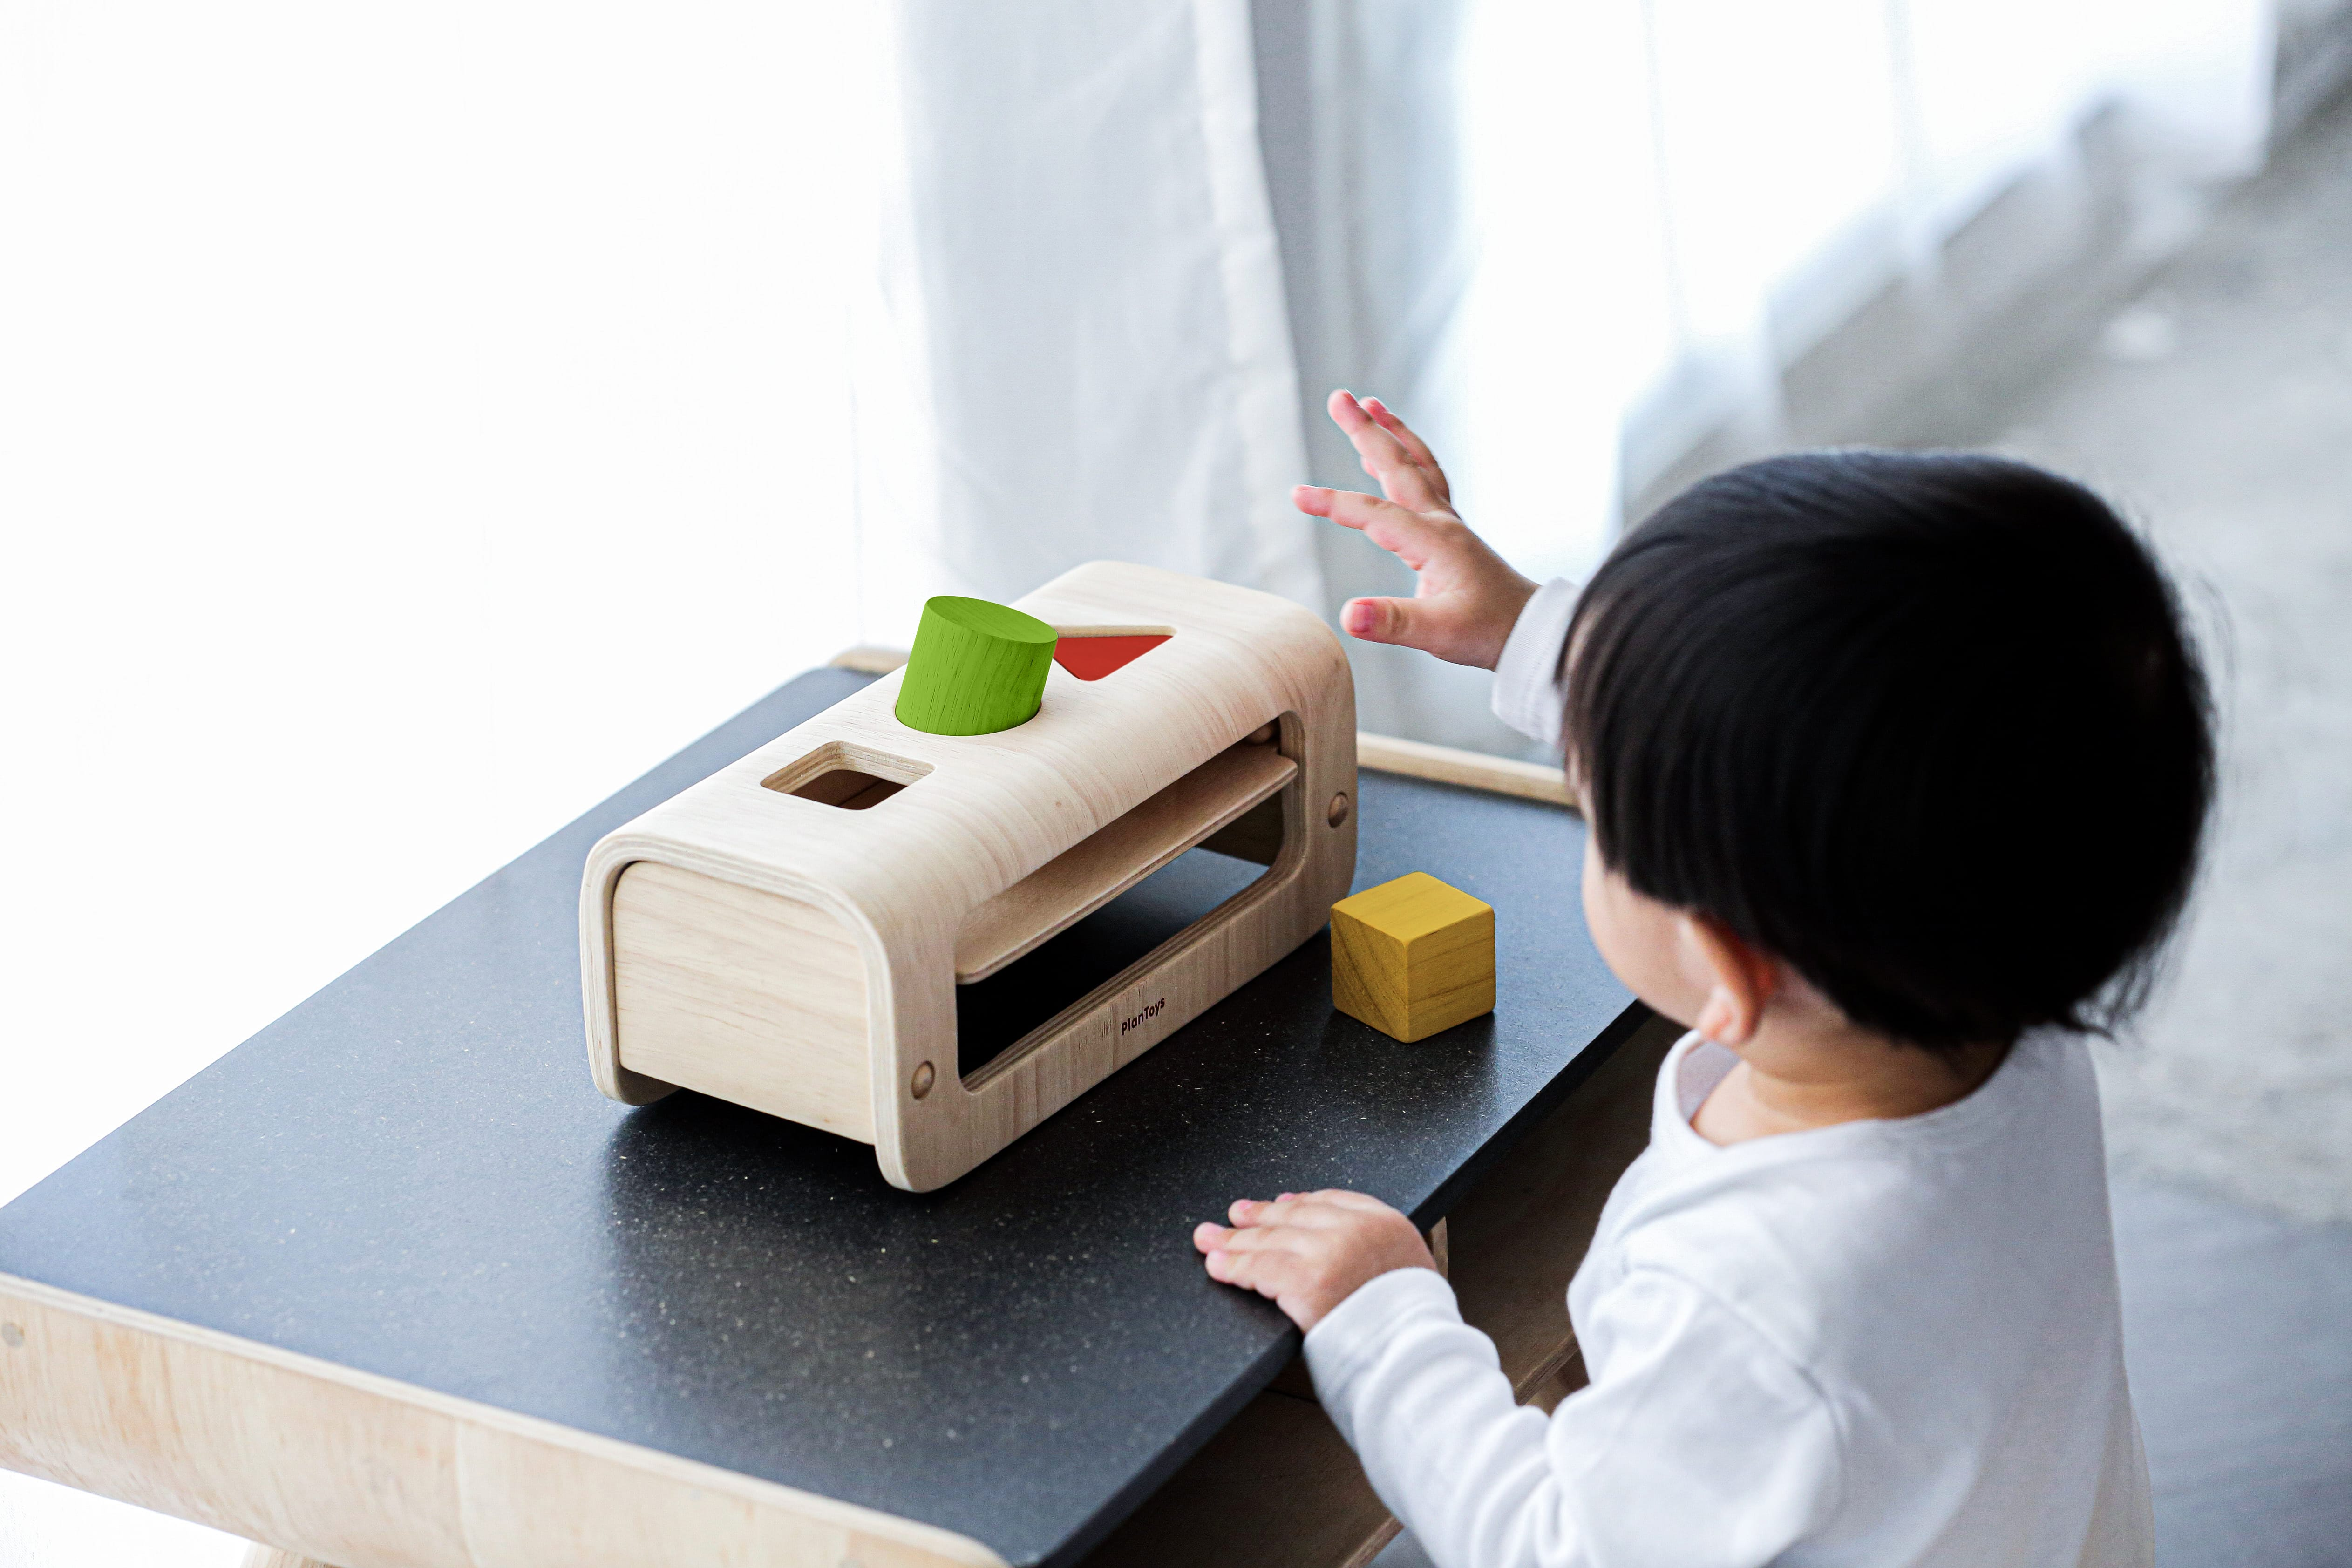 5398_PlanToys_SHAPE_and_SORT_Learning_and_Education_Problem_Solving_Mathematical_Visual_Coordination_Language_and_Communications_Fine_Motor_12m_Wooden_toys_Education_toys_Safety_Toys_Non-toxic_0.jpg